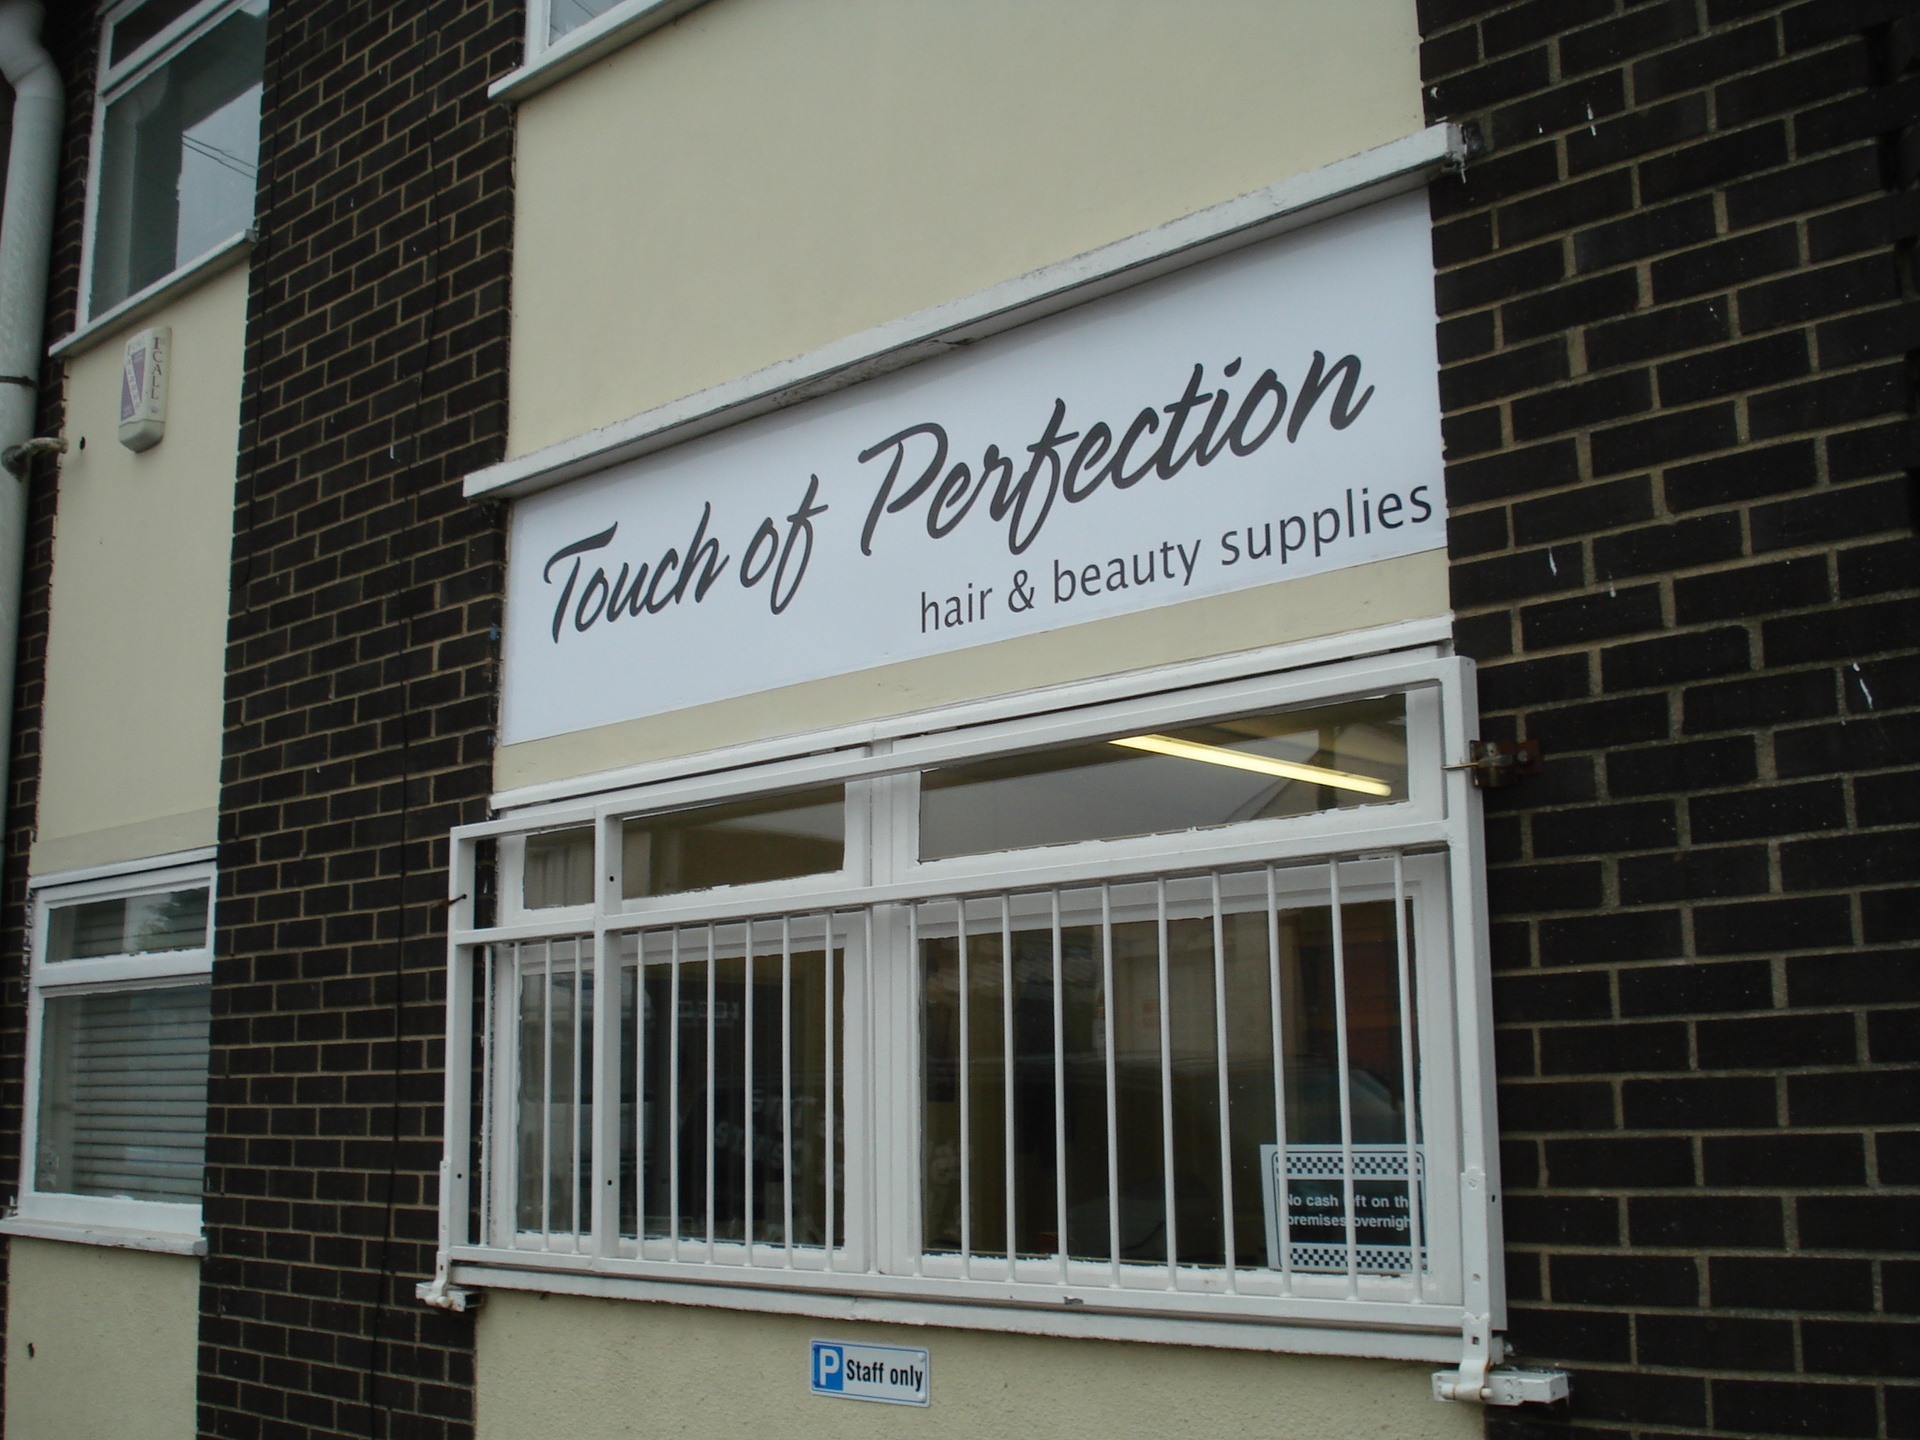 Touch of Perfection, Room 4 Touch of Perfection Albert Road, Albert Business Centre, Skegness, Lincolnshire, PE25 3RB, United Kingdom